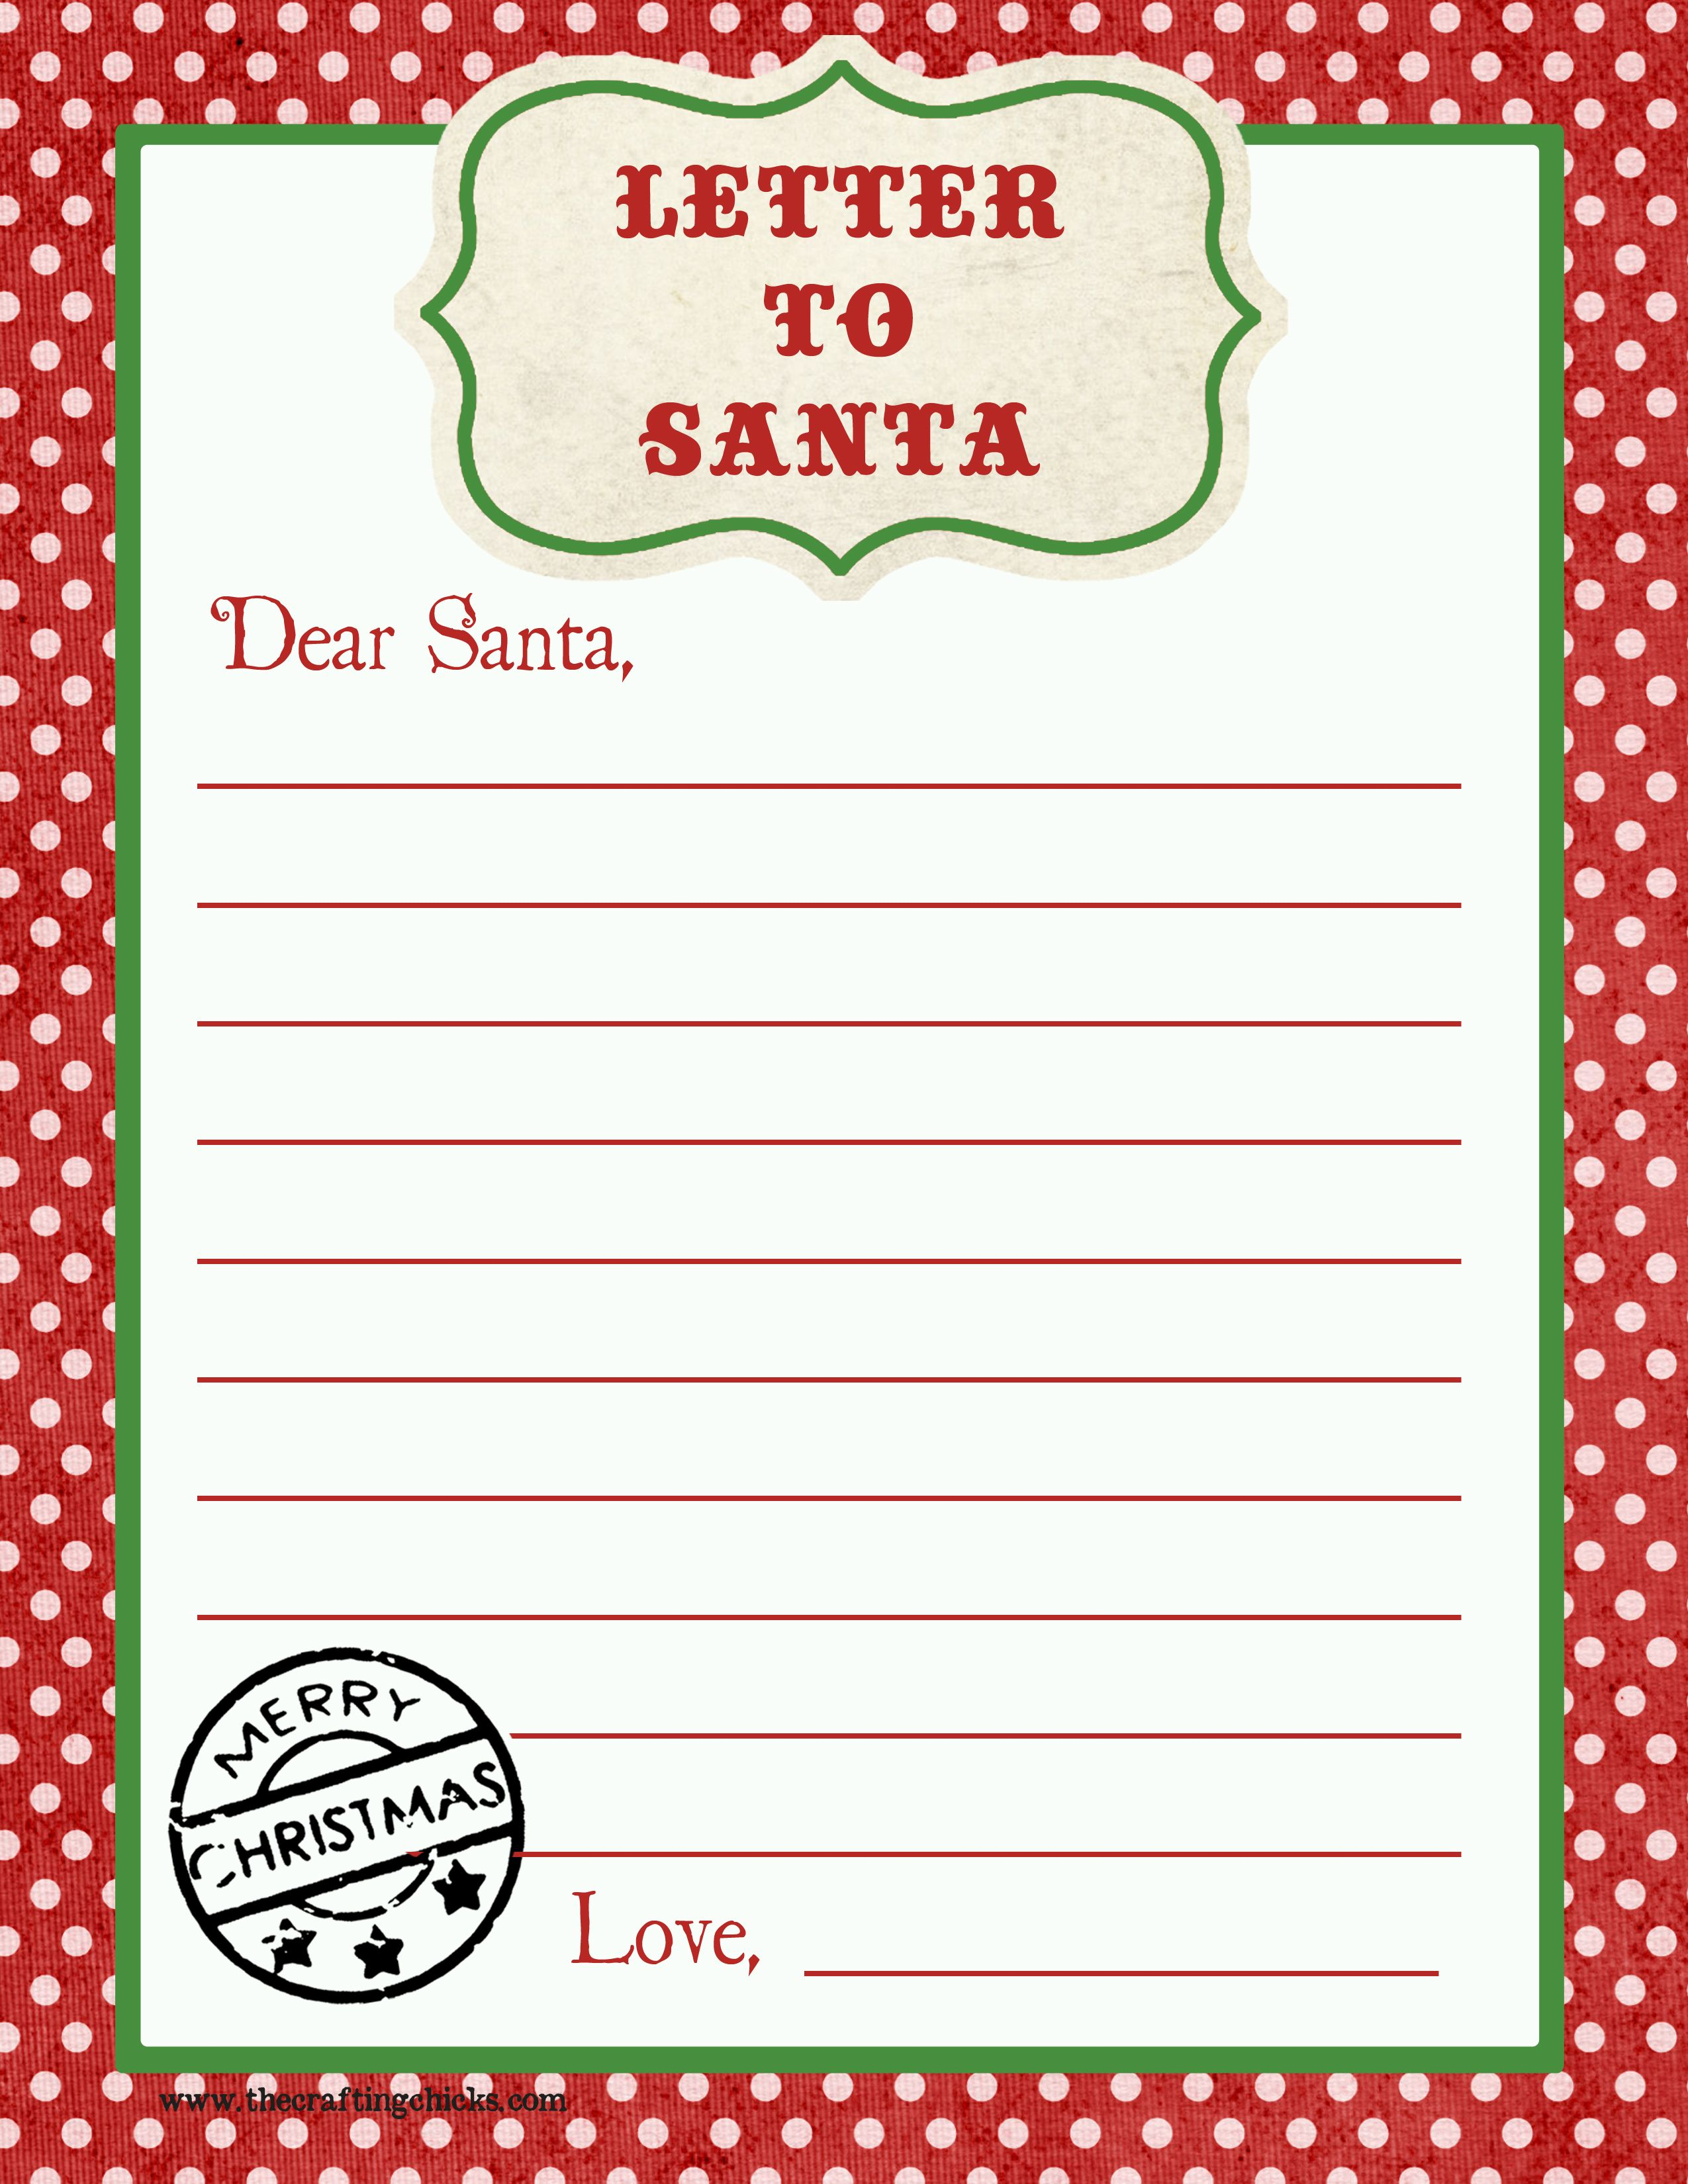 Letter From Santa Template Free Download - Letter to Santa Free Printable Download